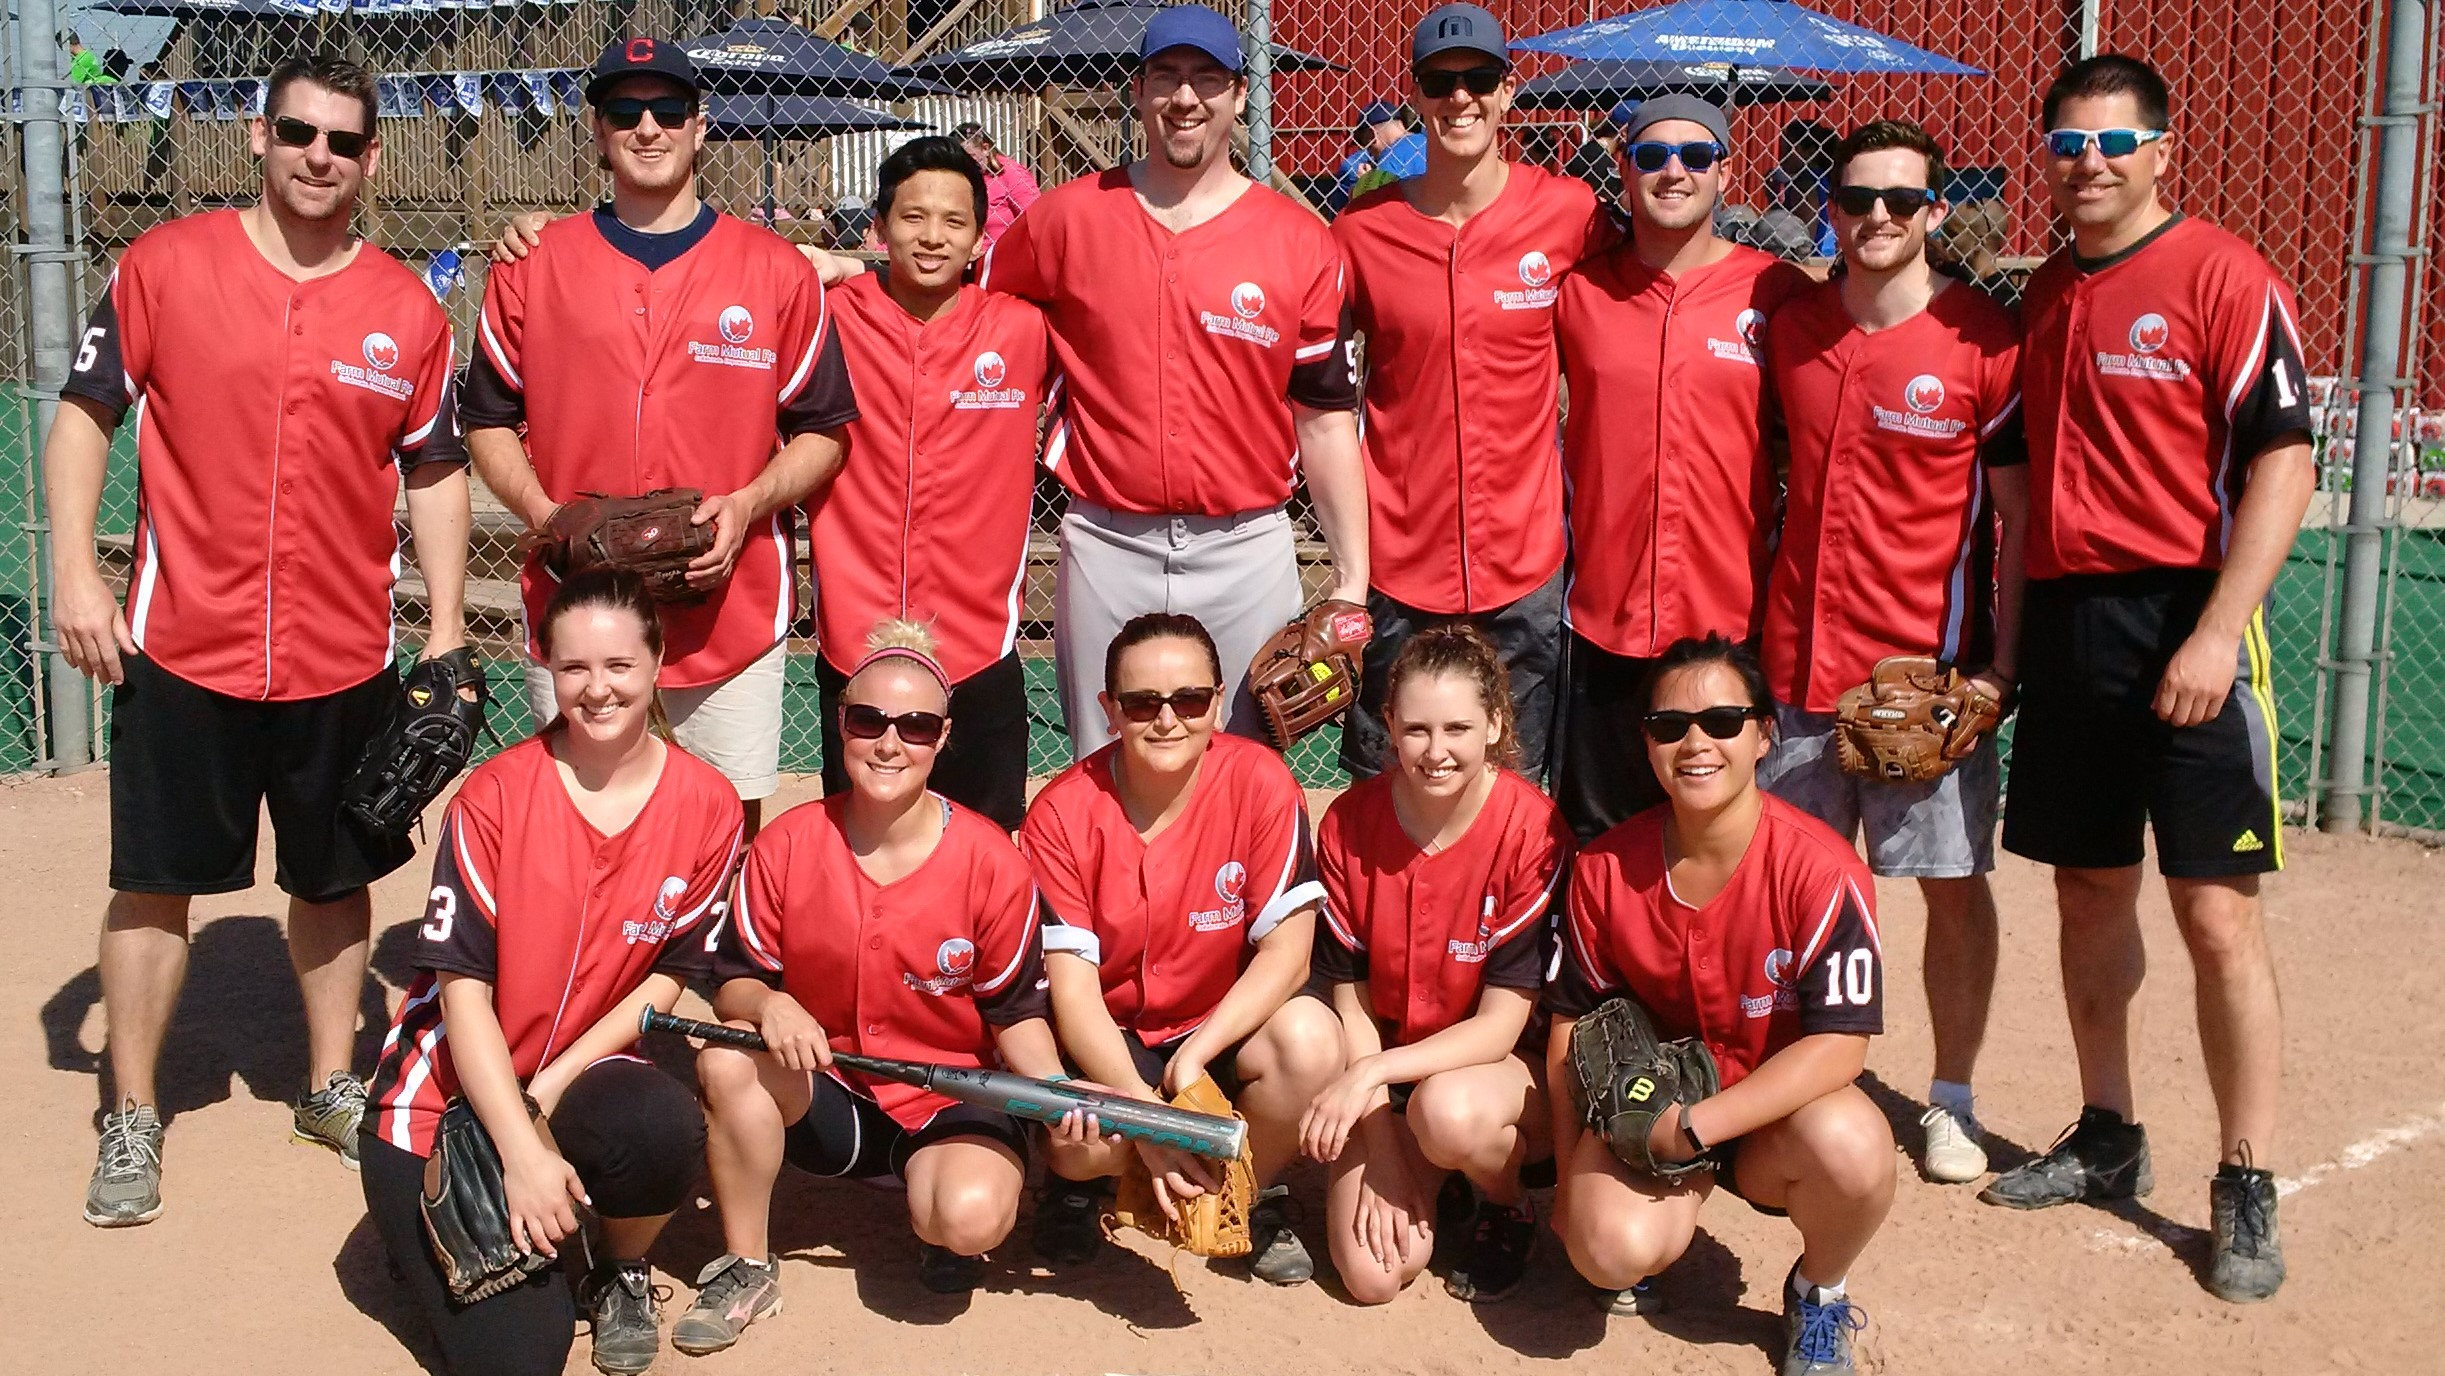 Farm Mutual Re softball team